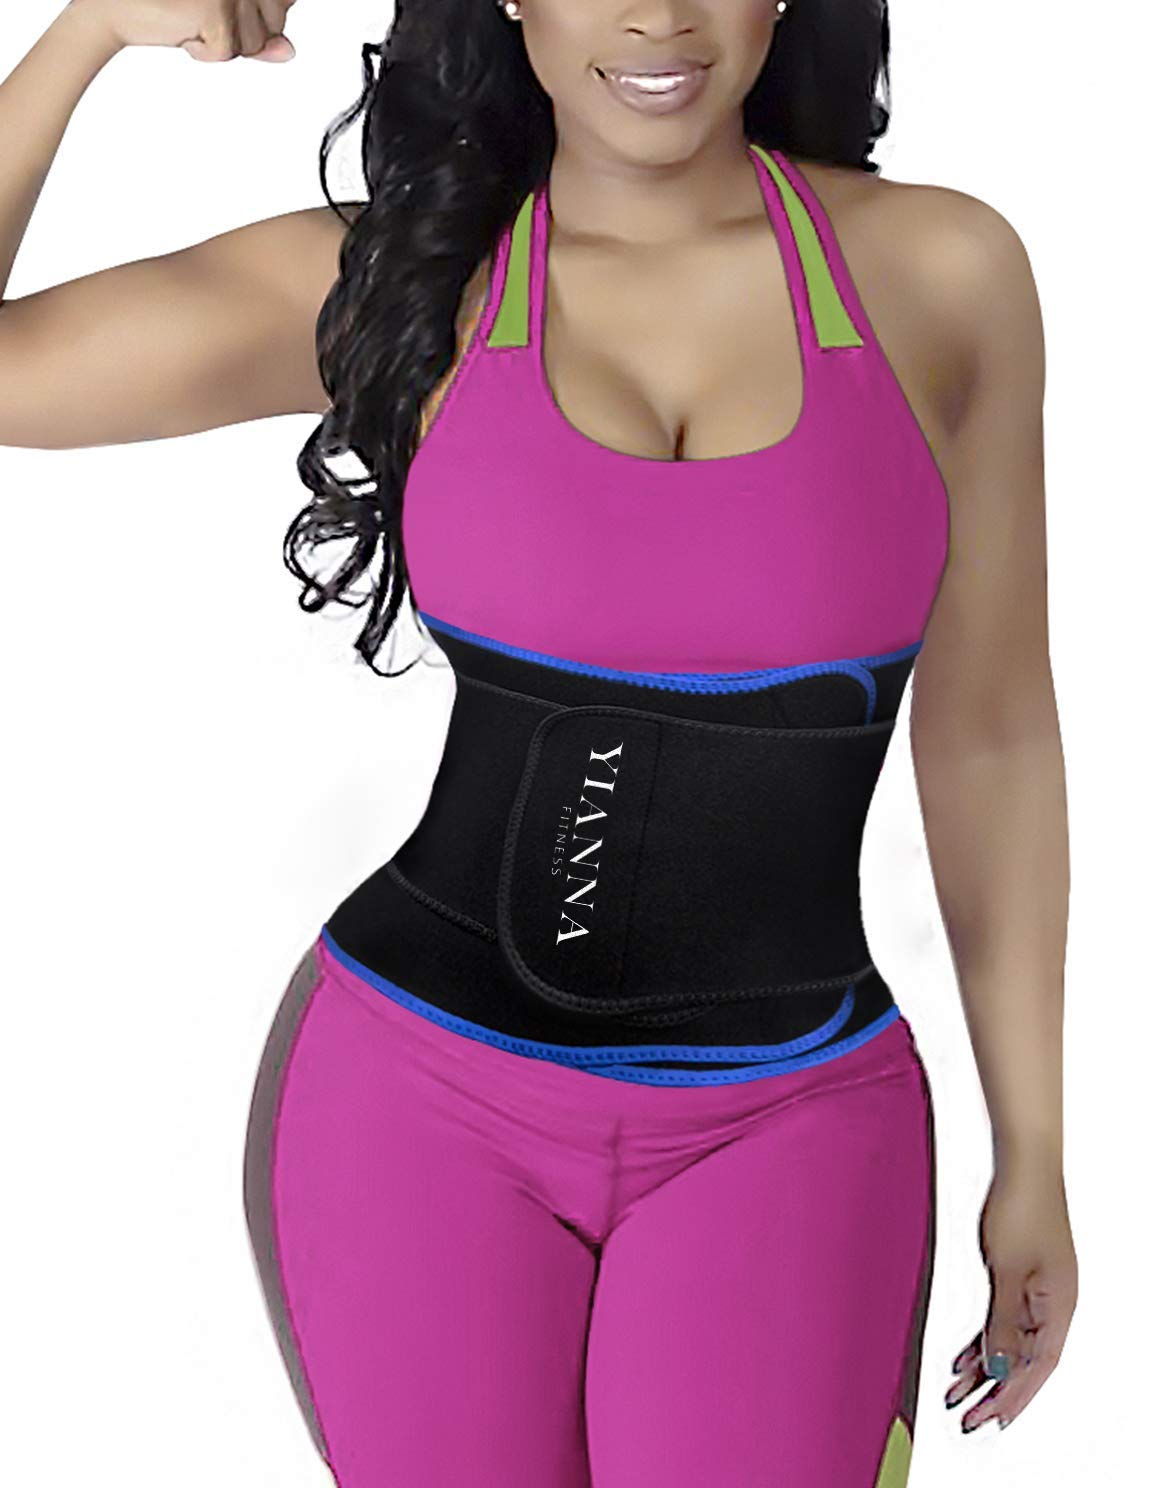 YIANNA Waist Trainer Slimming Body Shaper Belt - Sport Girdle Waist Eraser Trimmer Compression Belly Weight Loss Fitness Tummy Control, YA8010-Blue-S